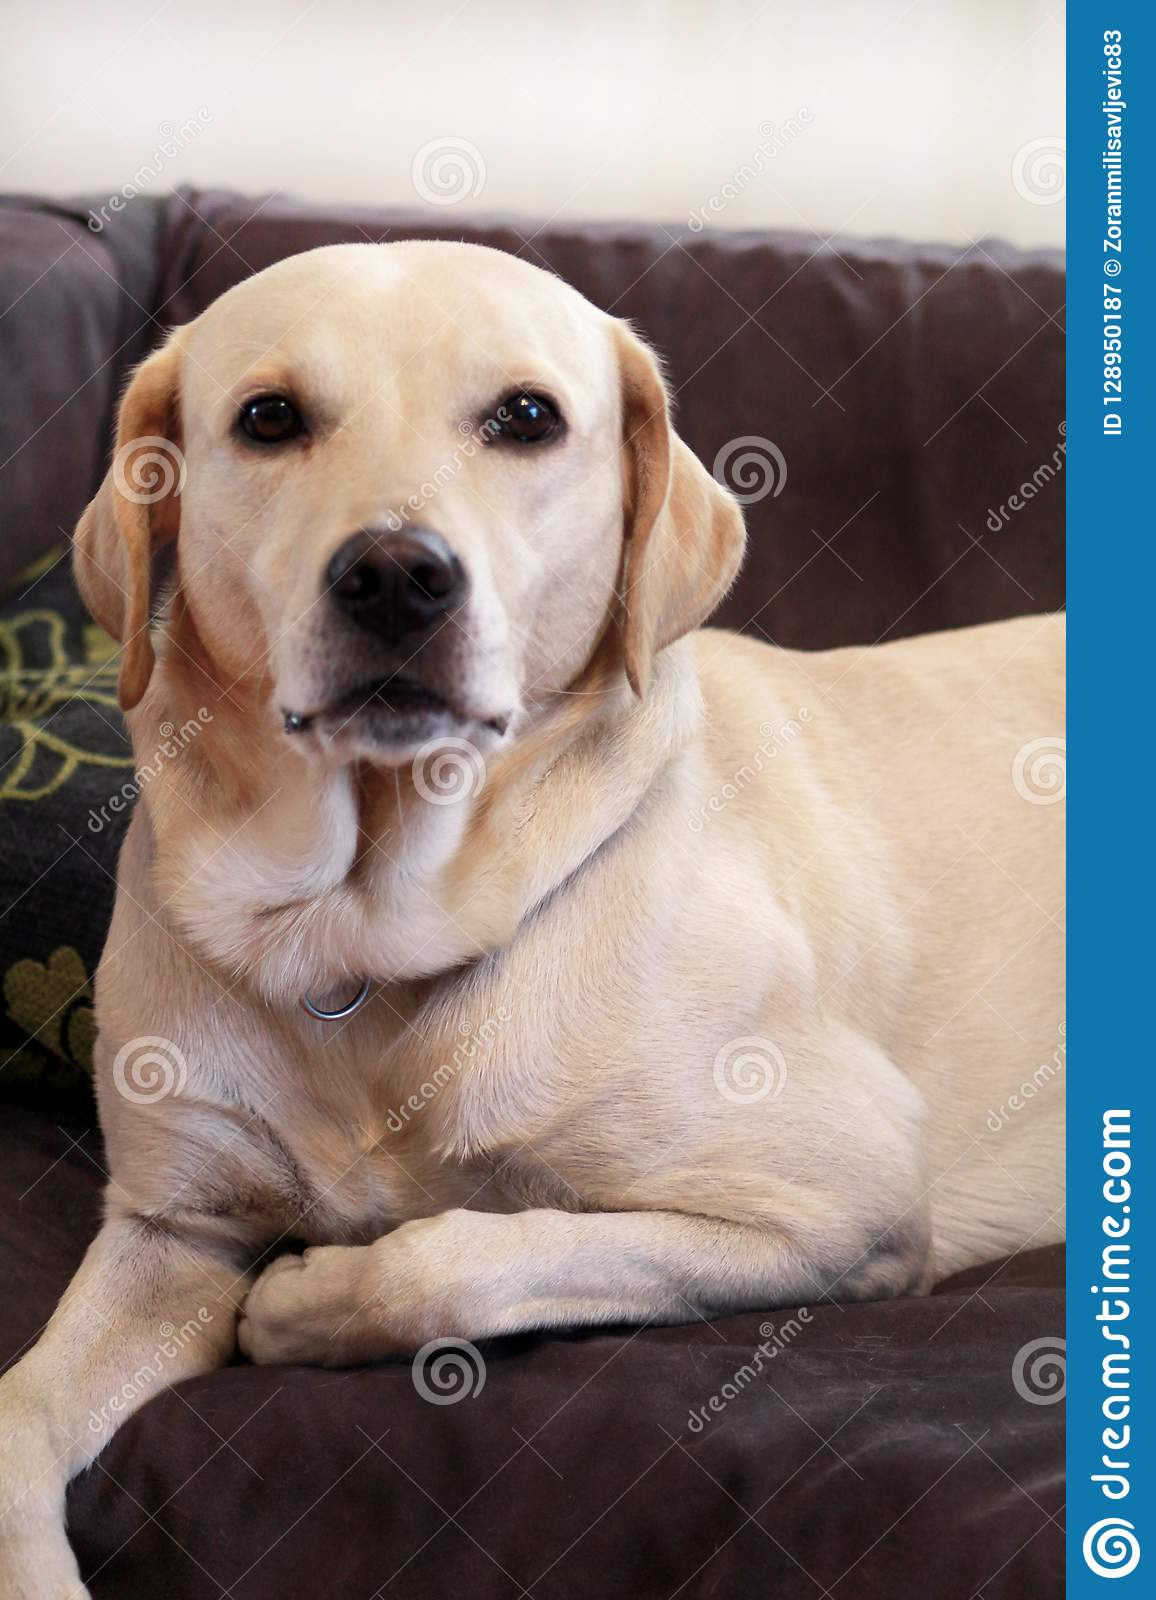 Dog Is Resting At Home Yellow Labrador Retriever Dog Laying In The Bed A Beautiful Dog Enjoys On Bed In The Living Room Lovely Dog Cute Doggy Pretty